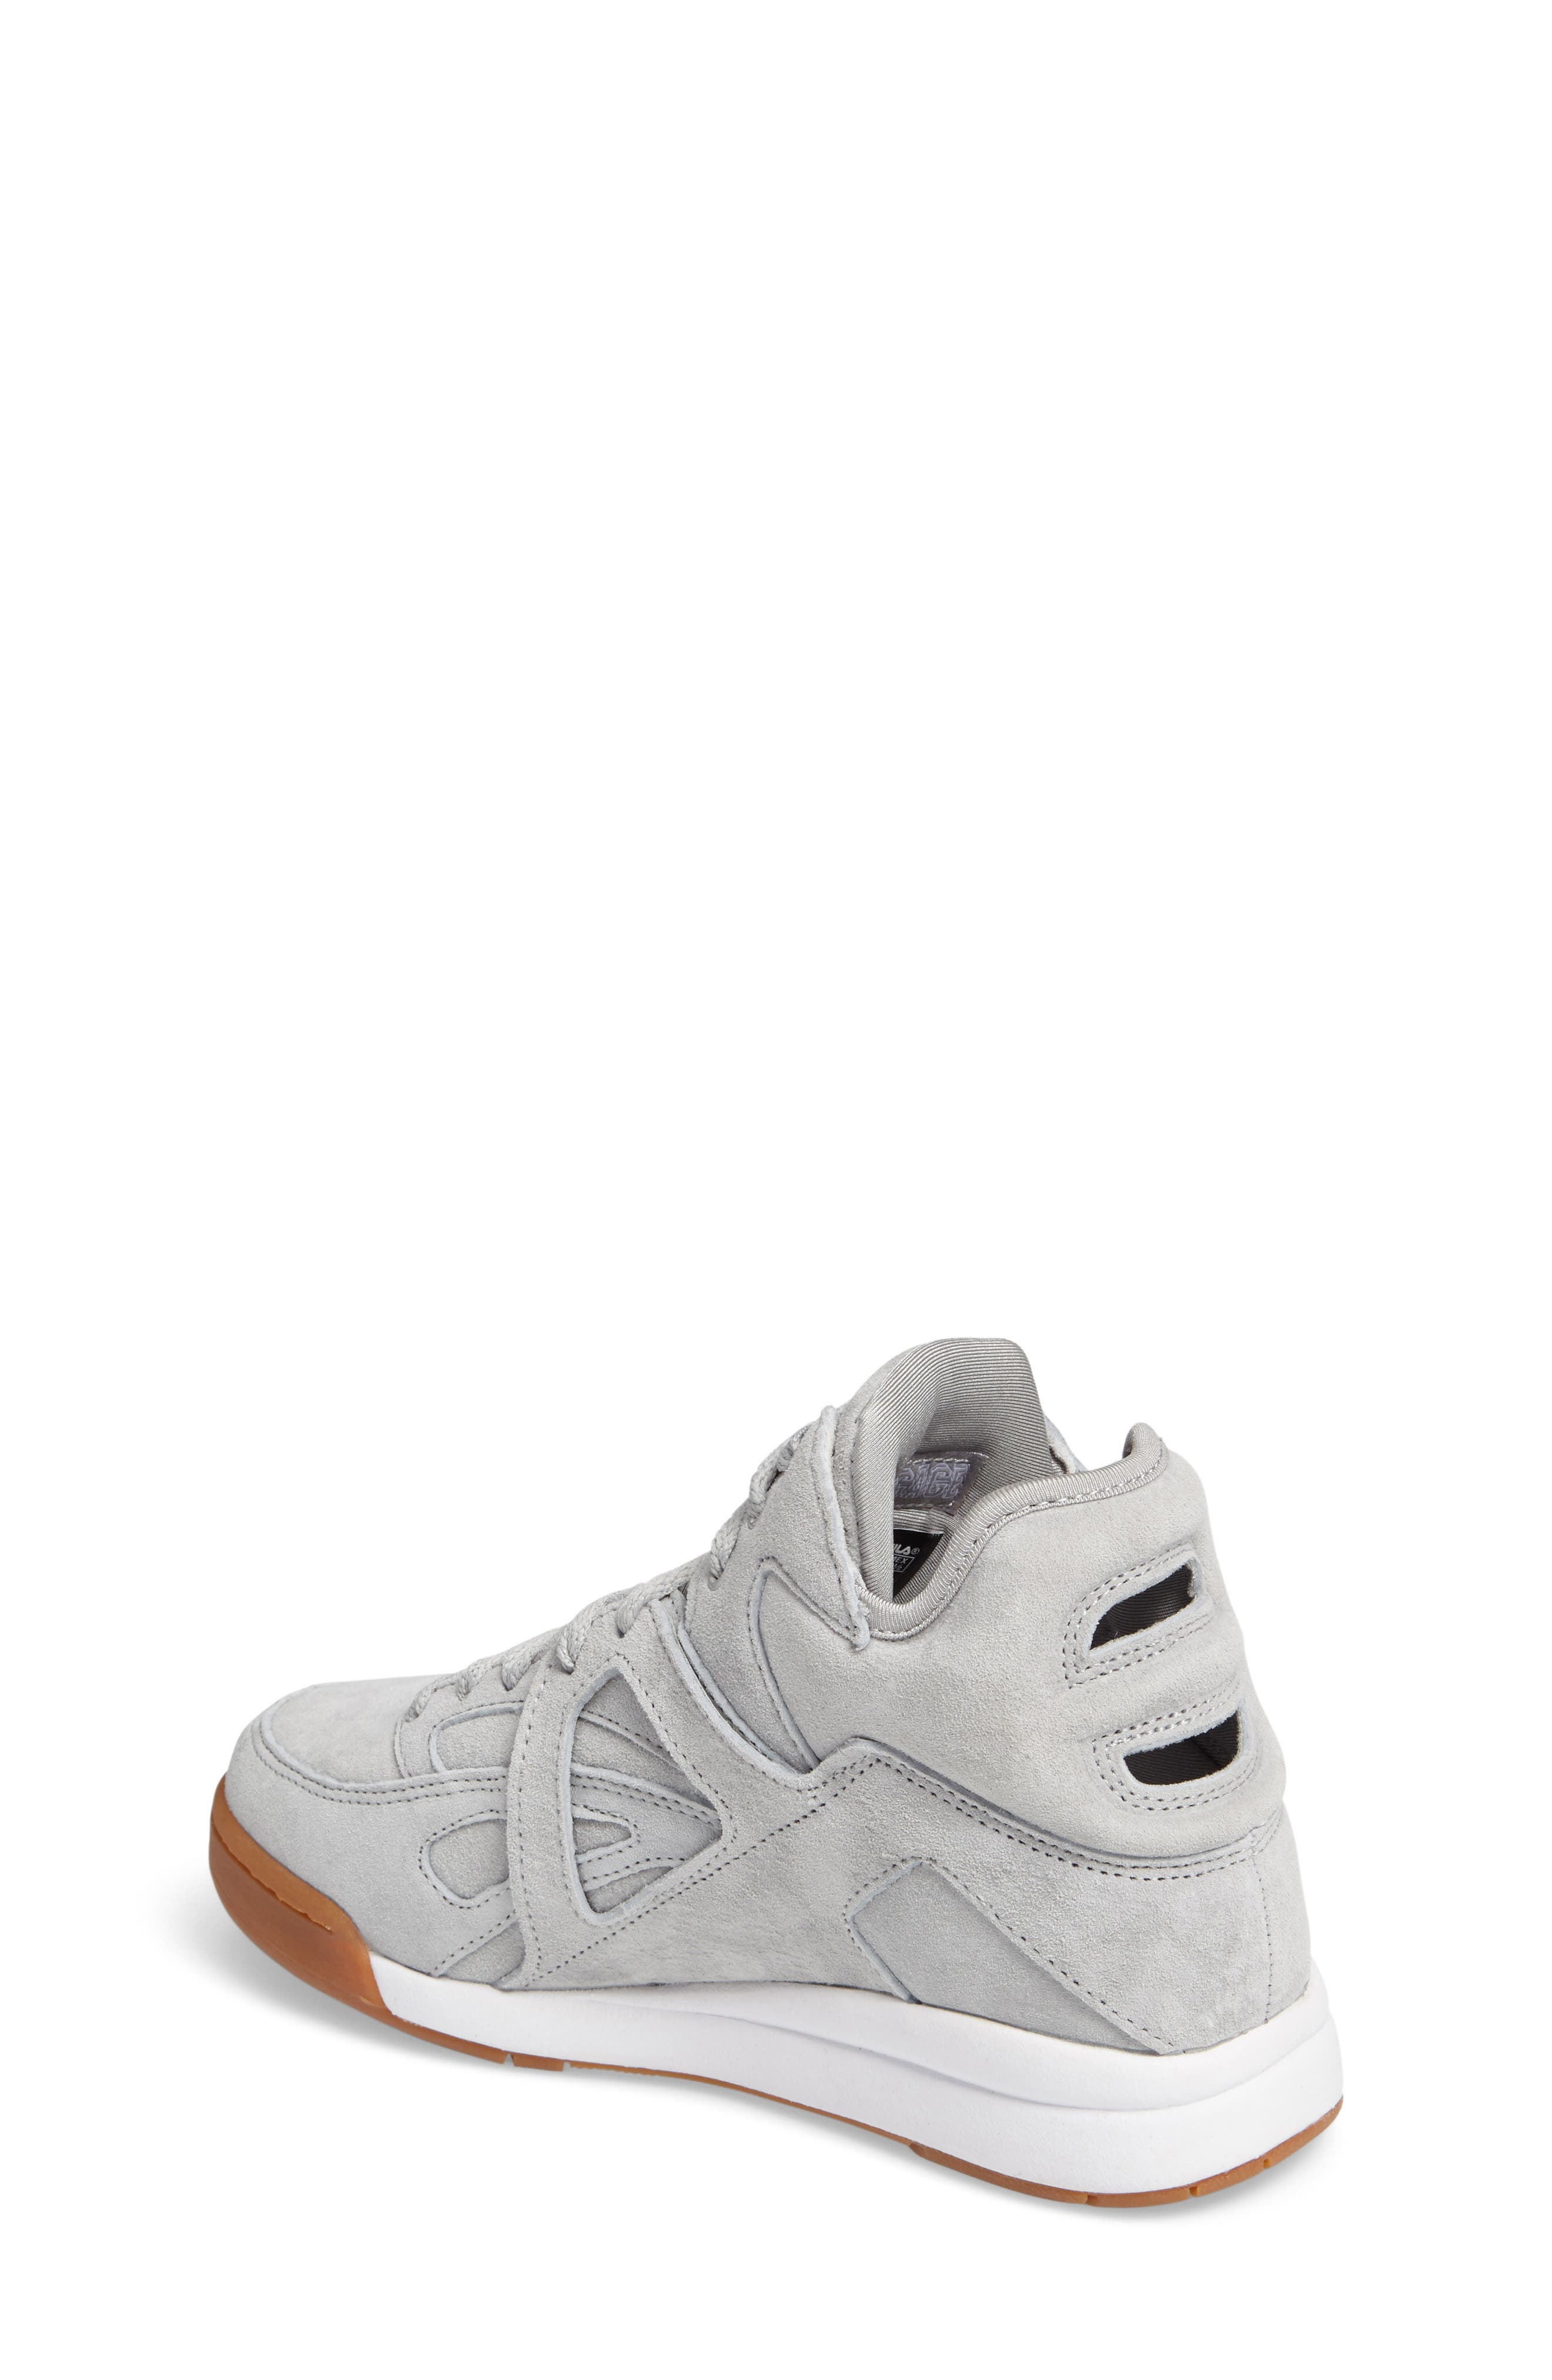 The Cage High Top Sneaker,                             Alternate thumbnail 2, color,                             072